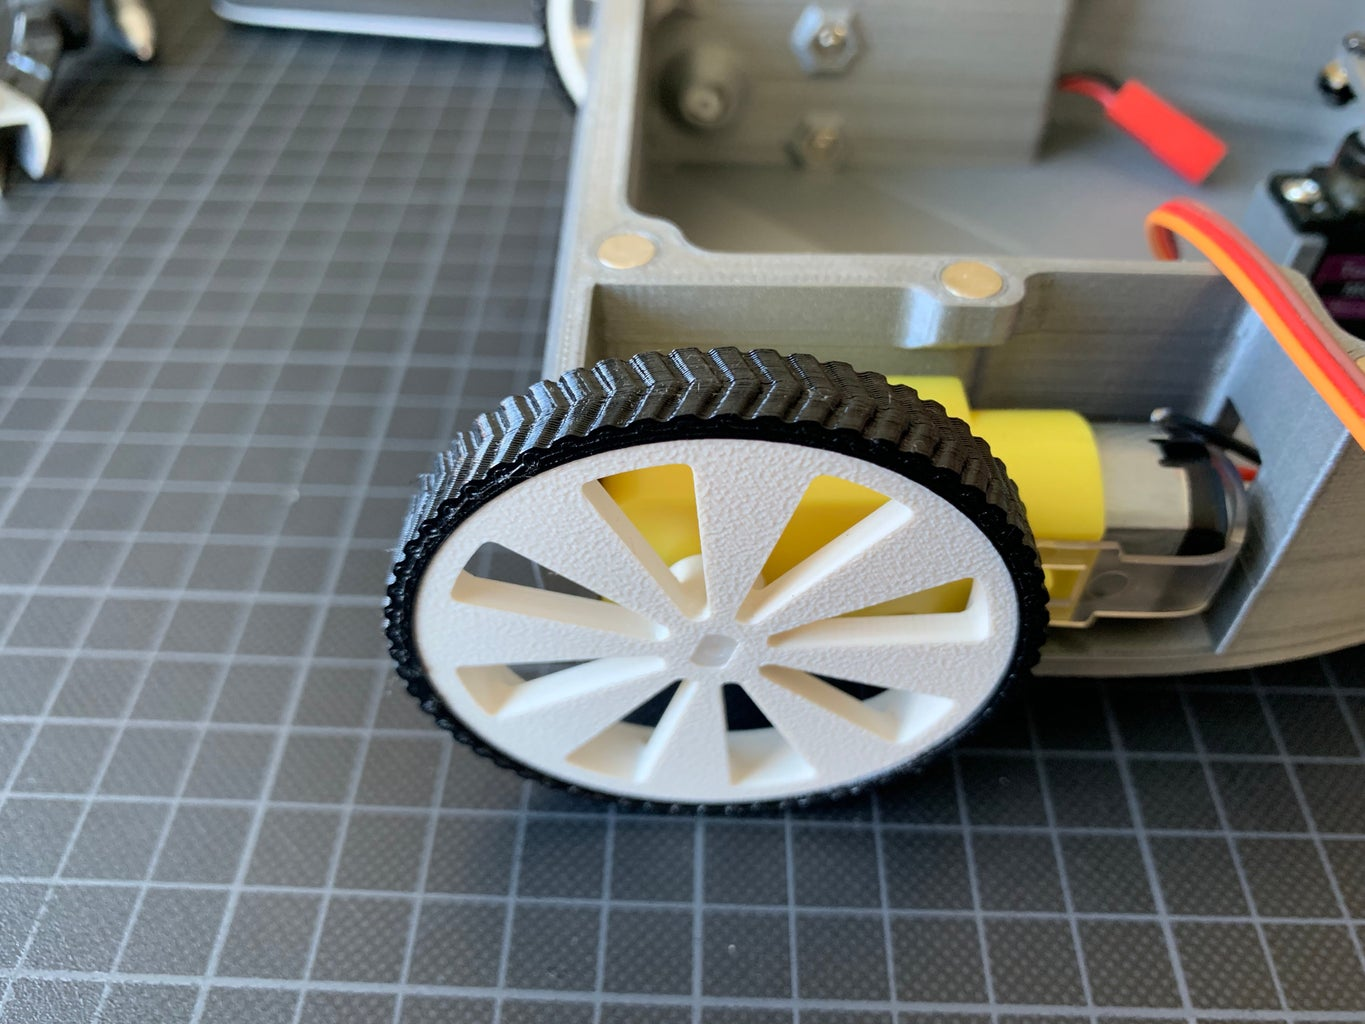 Front Wheels and Electronics